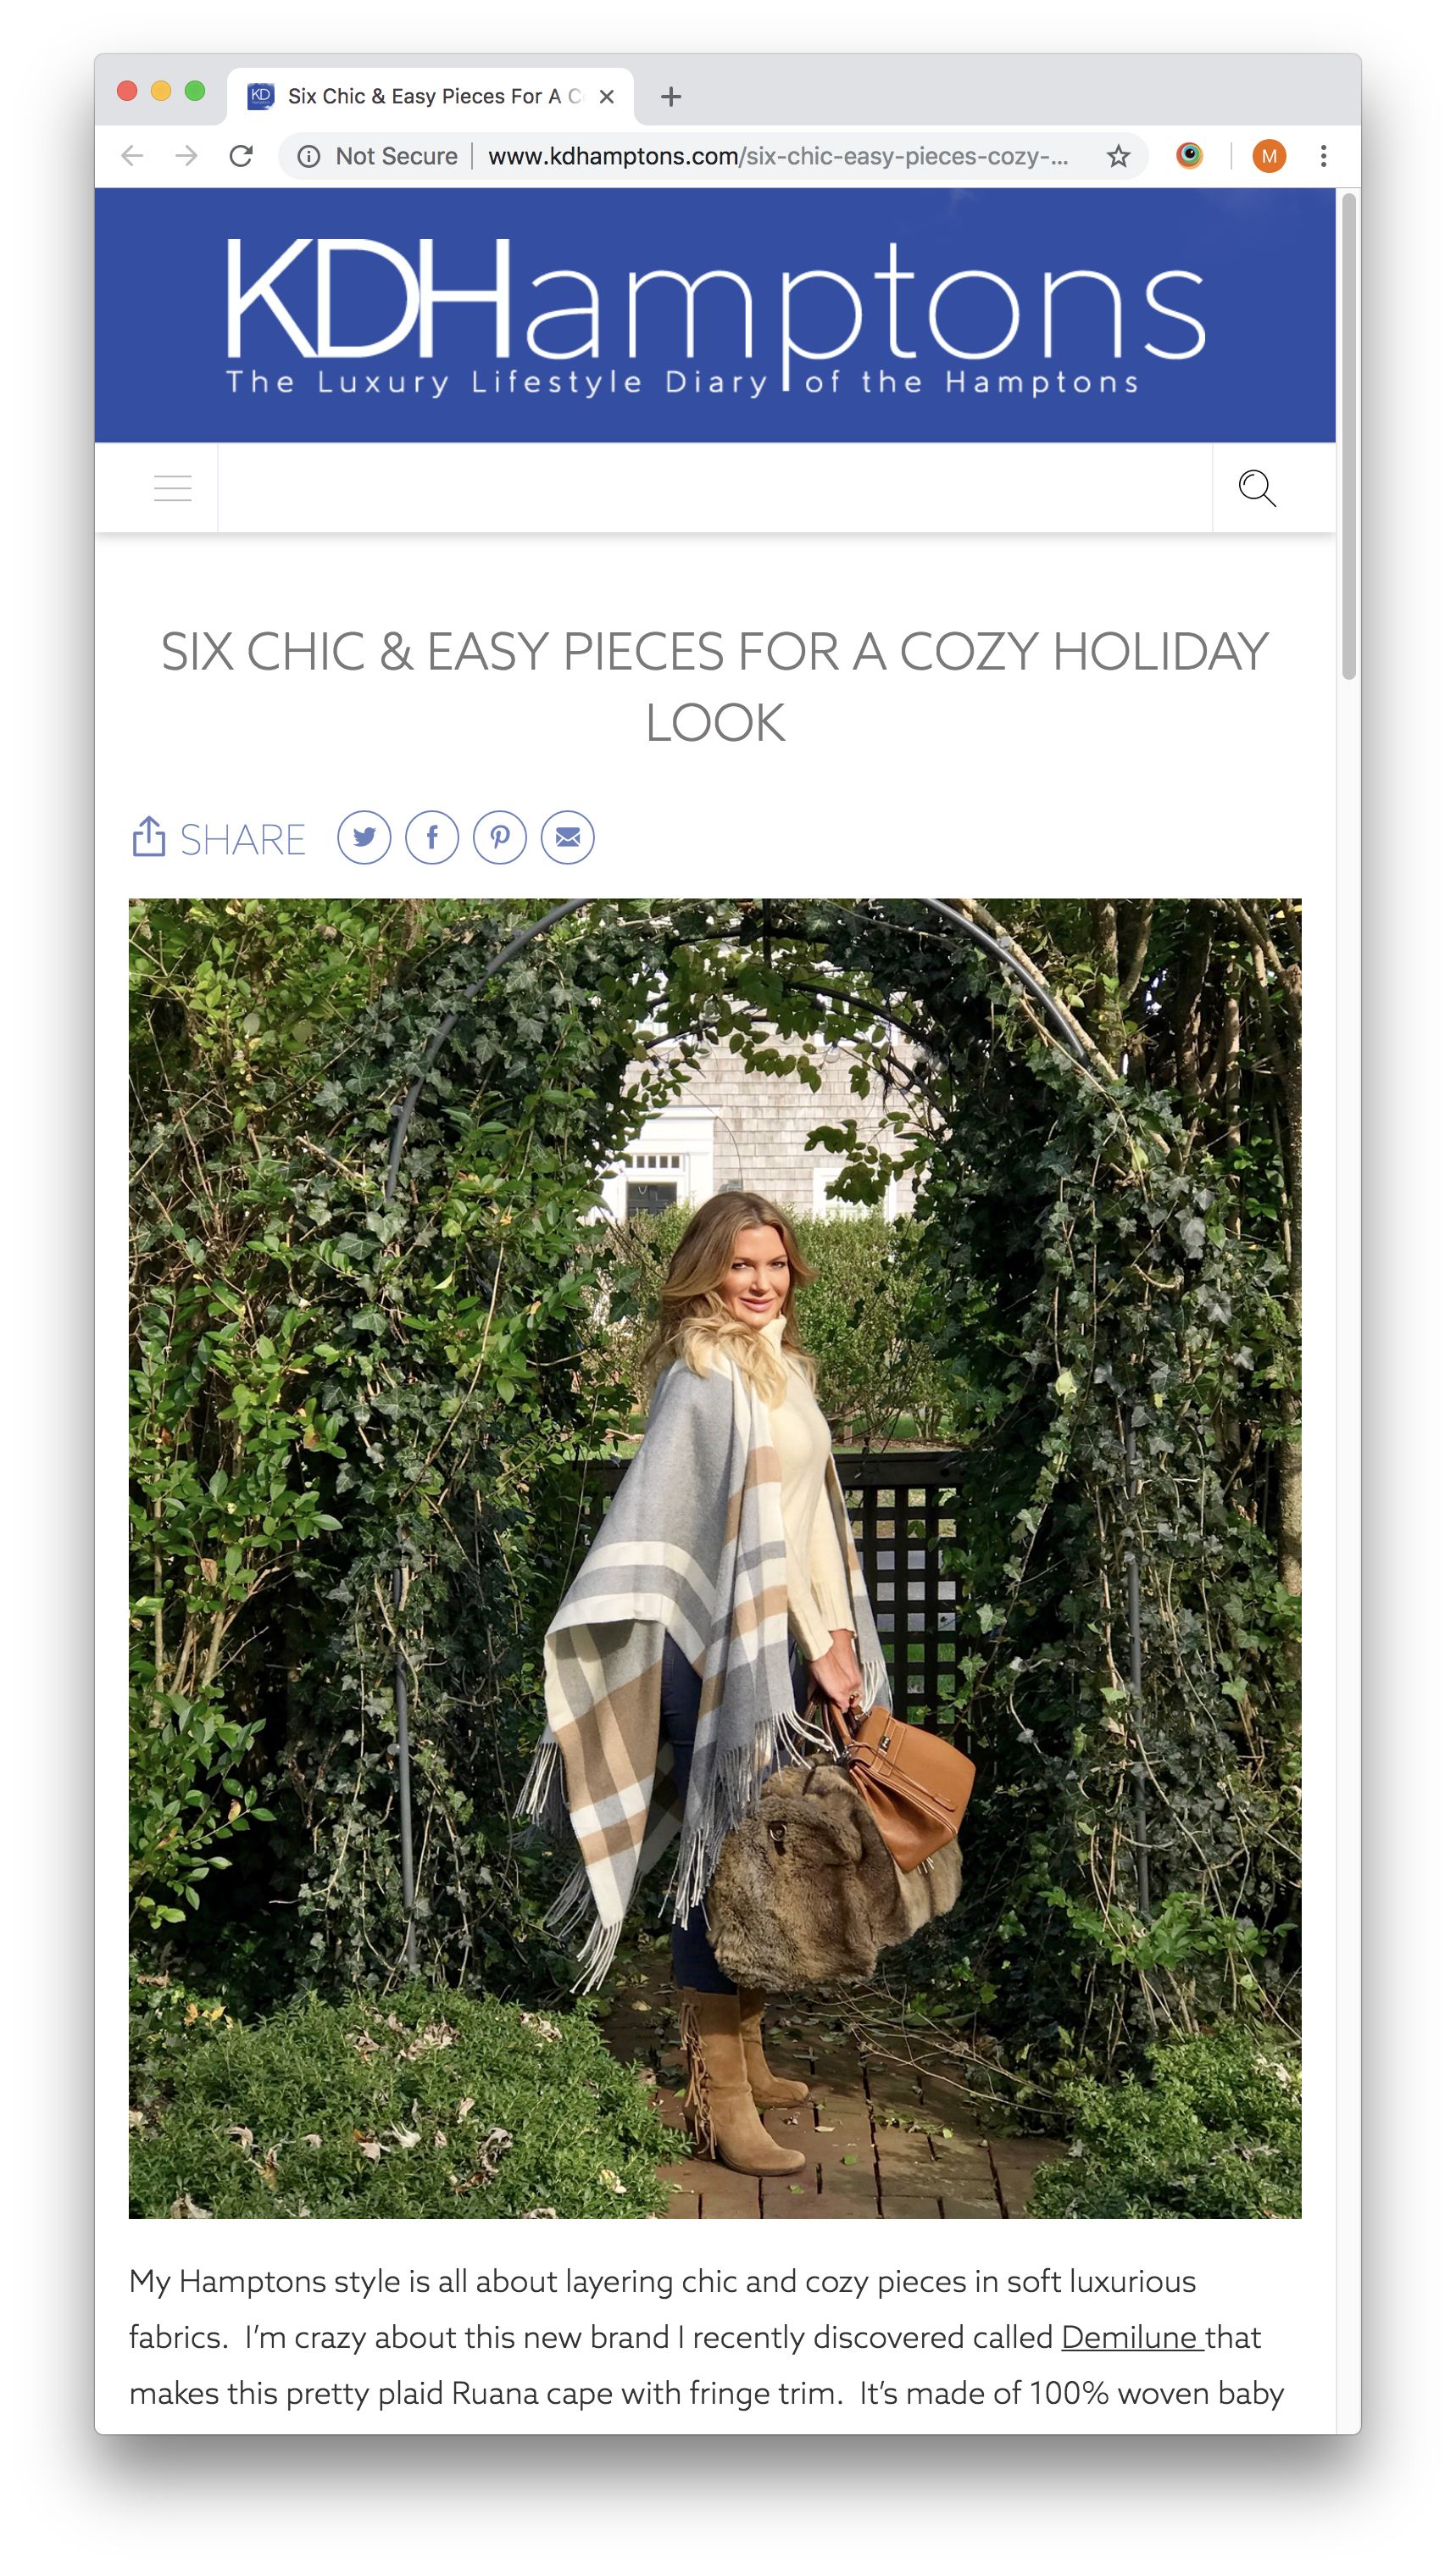 Six chic and easy pieces for a cozy holiday look — KDHamptons, December 2018